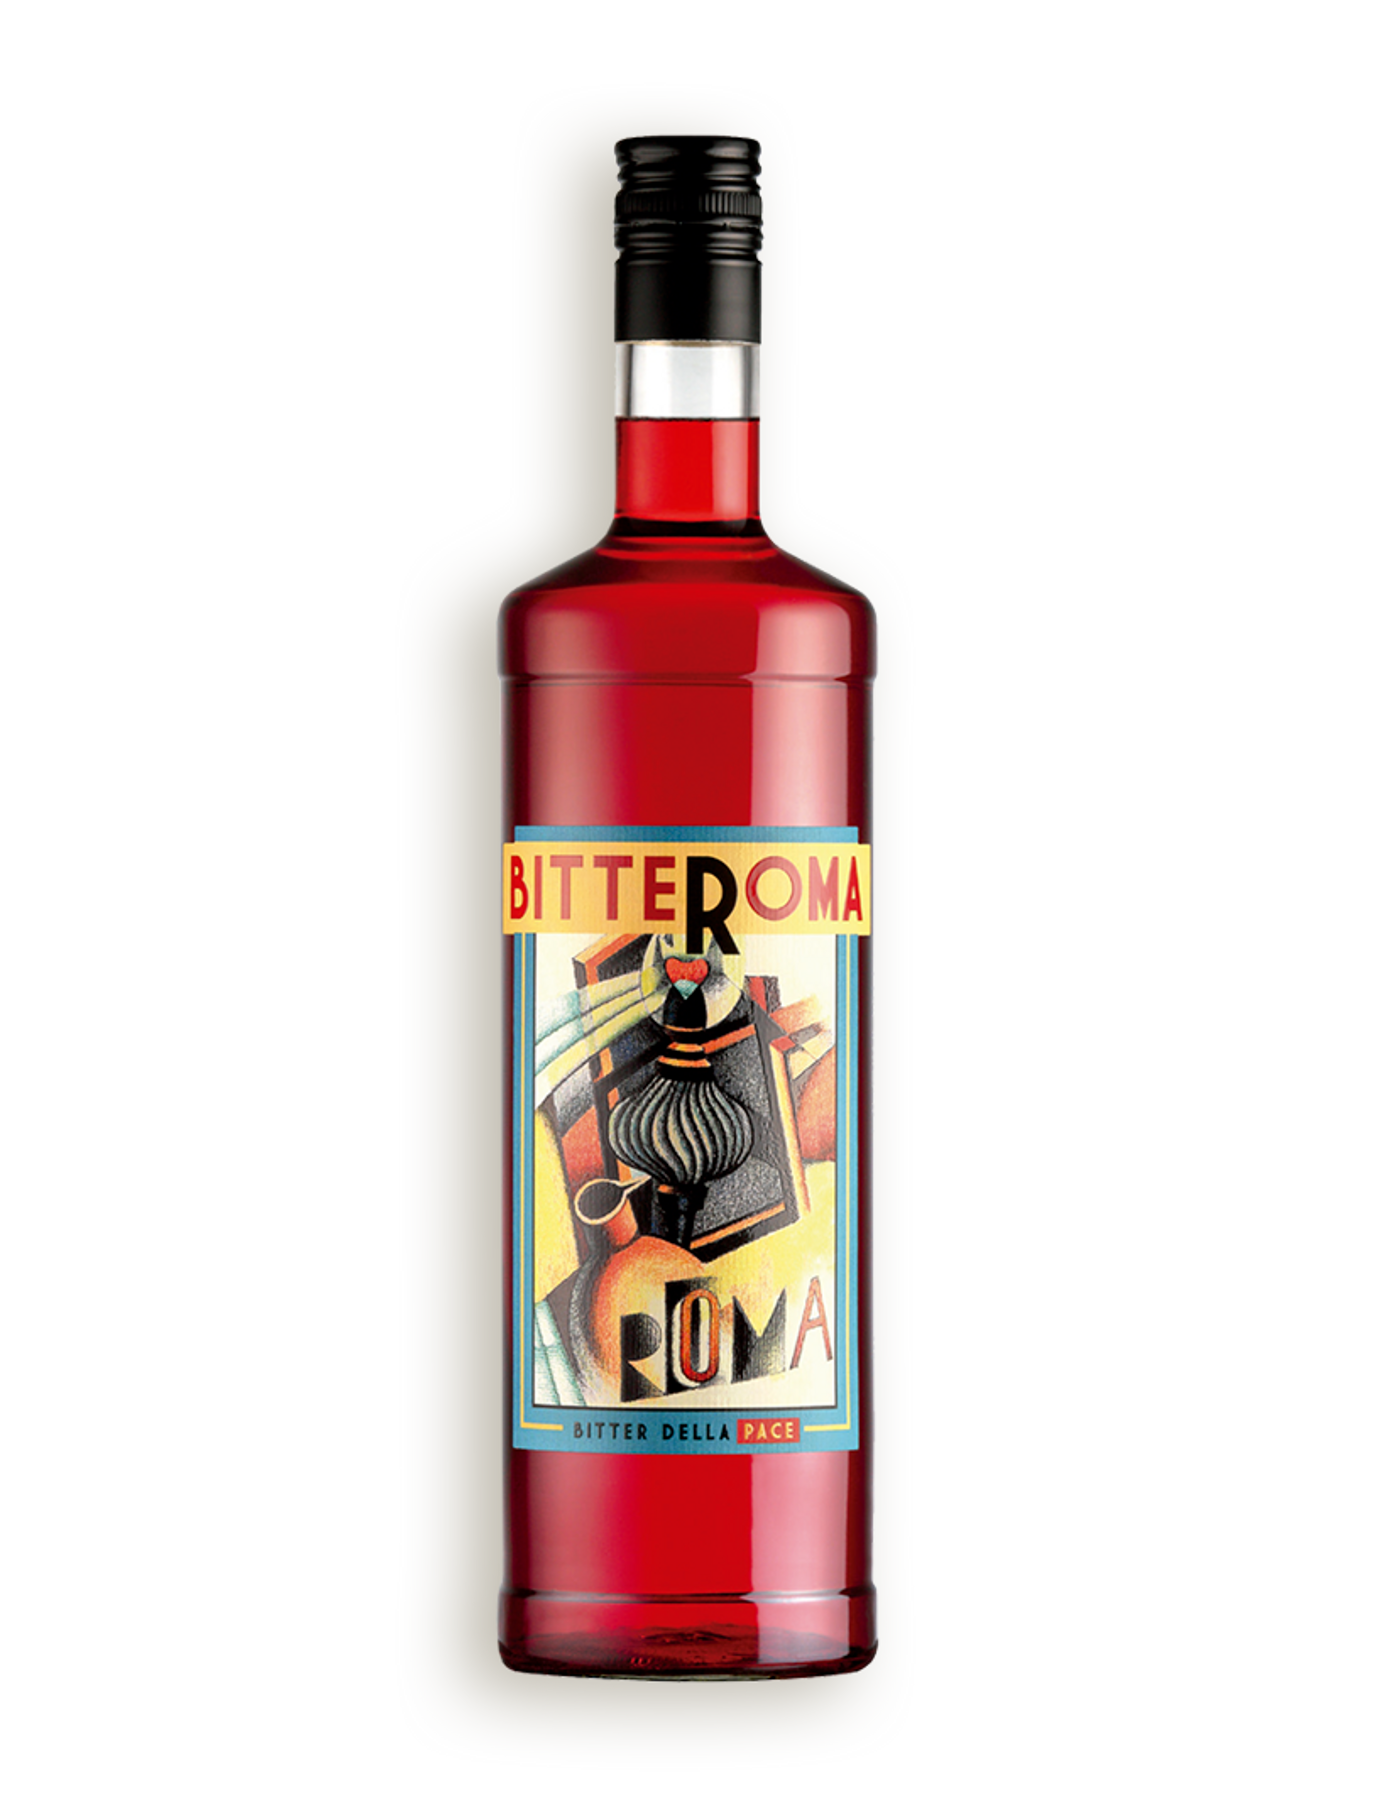 Bitter roma rosso